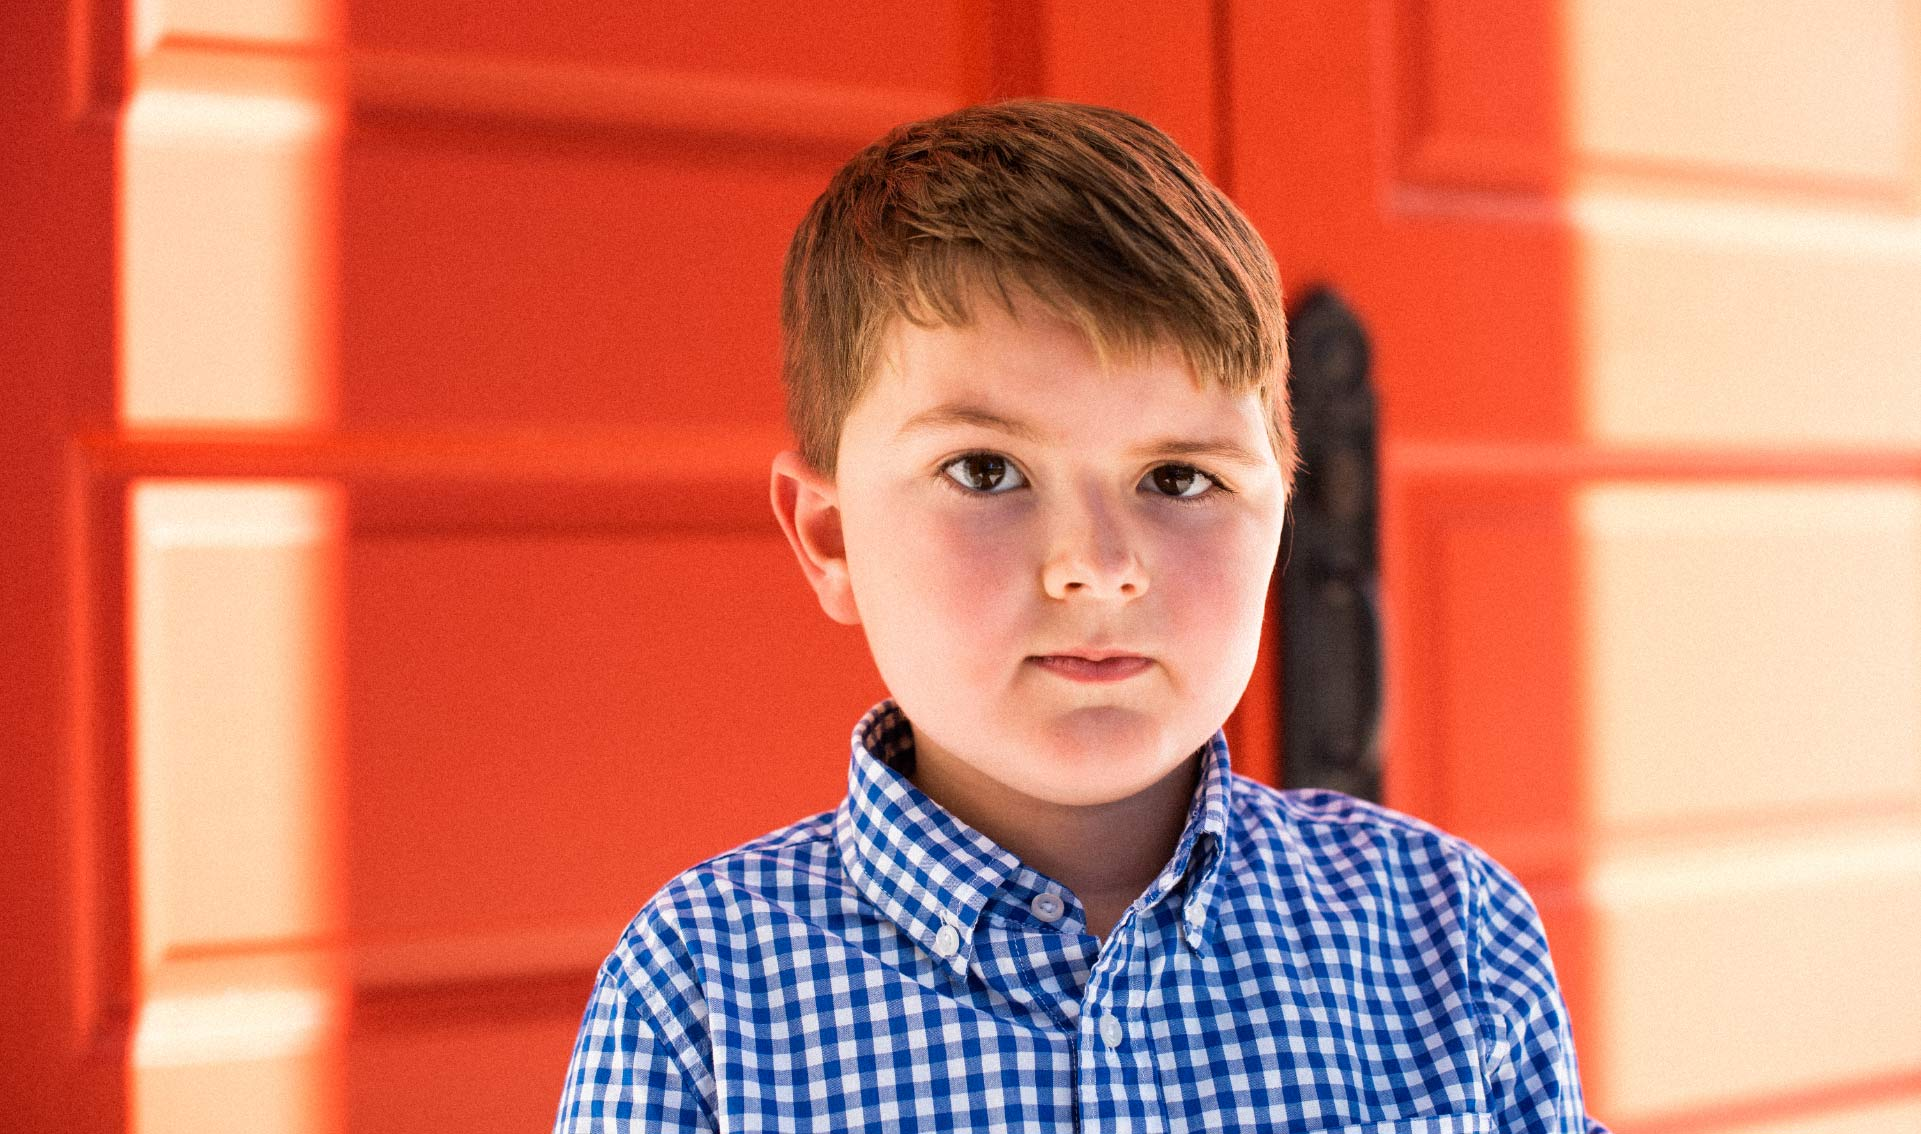 Elliott, a young boy in a blue and white checkered shirt, looking into the camera and slightly smiling.